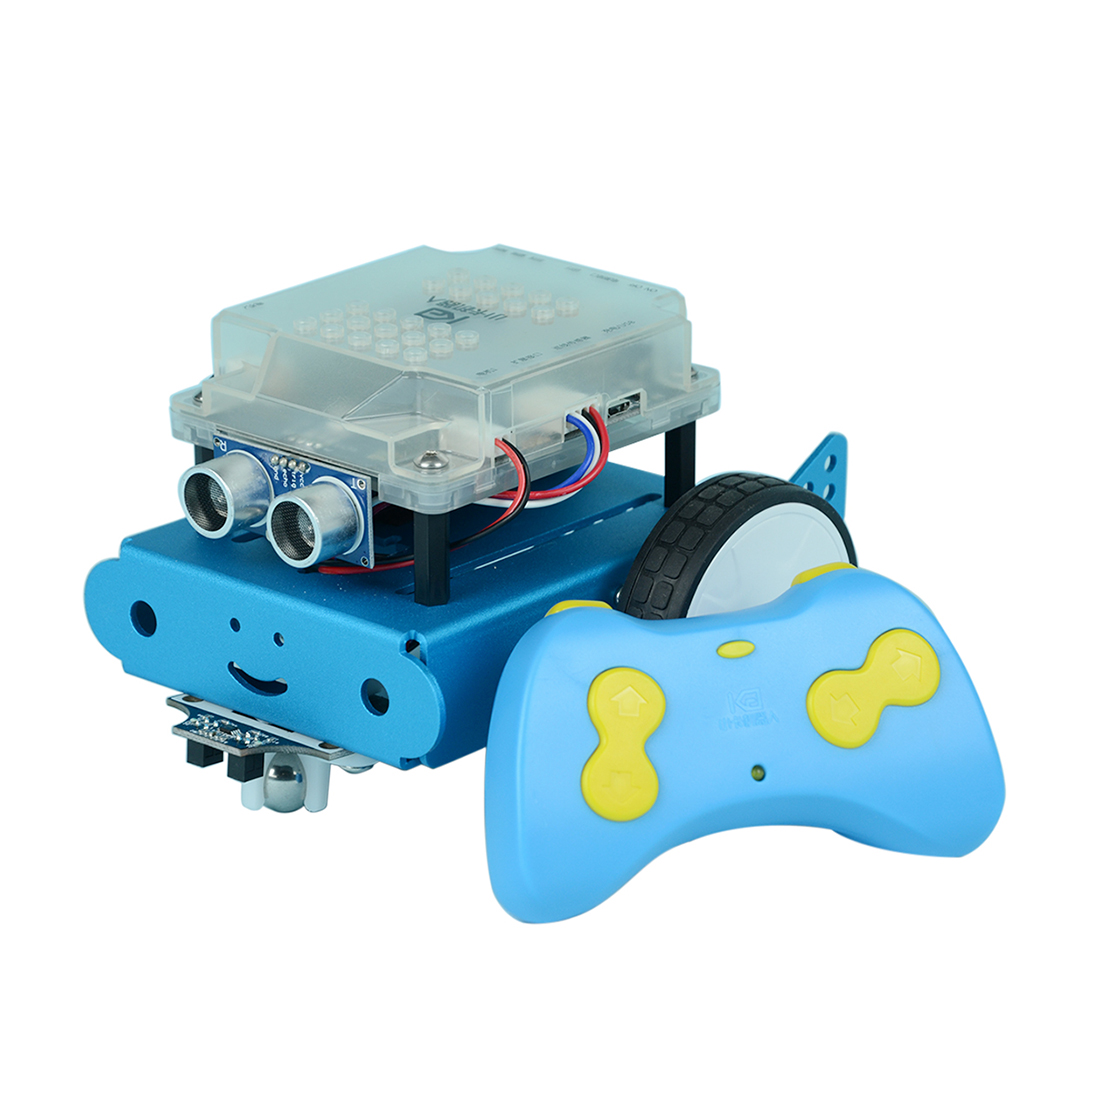 Programmable Robot DIY Obstacle Avoidance Car Graphic Programming Steam Scratch Educational Learning Kit with RC Handle máy xay sinh tố của đức